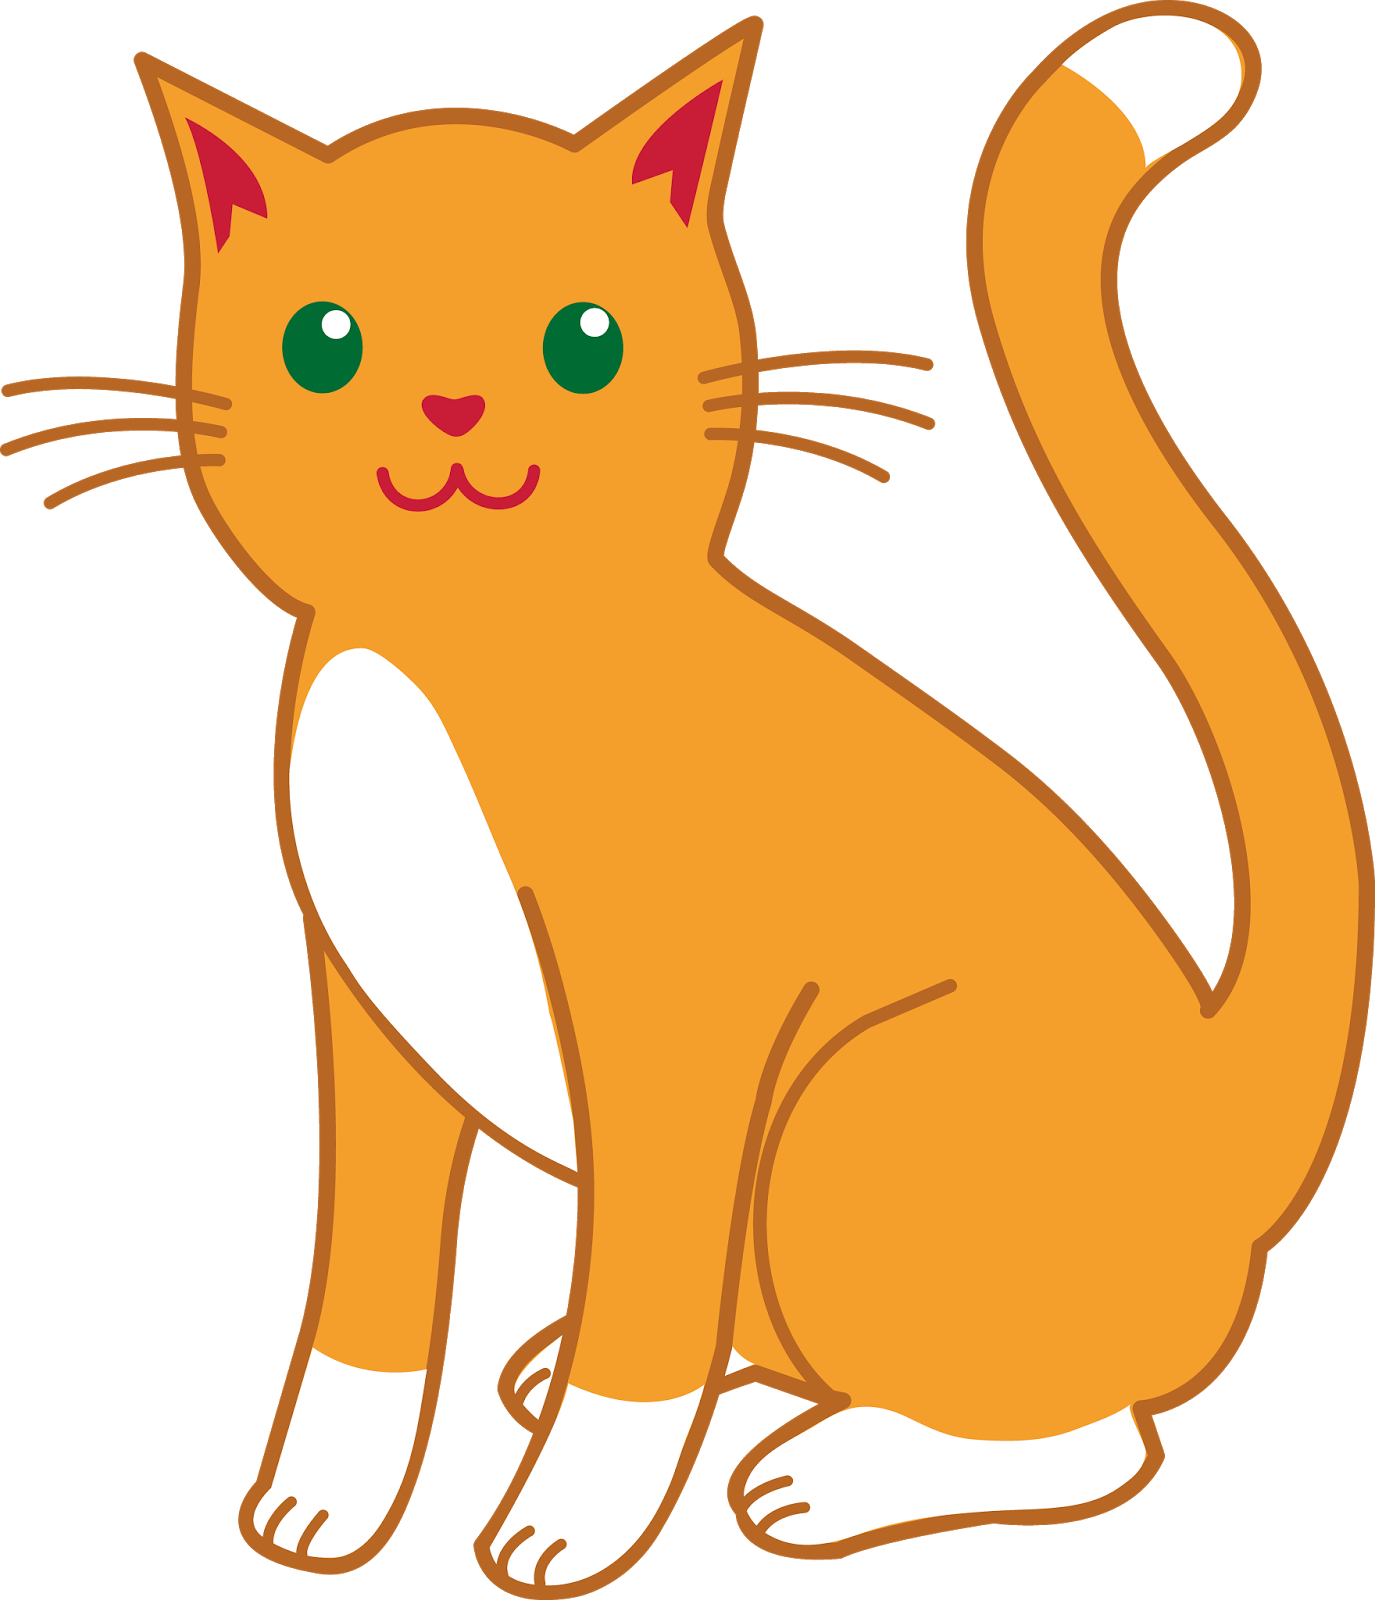 Free Cartoon Cats, Download Free Clip Art, Free Clip Art on Clipart.